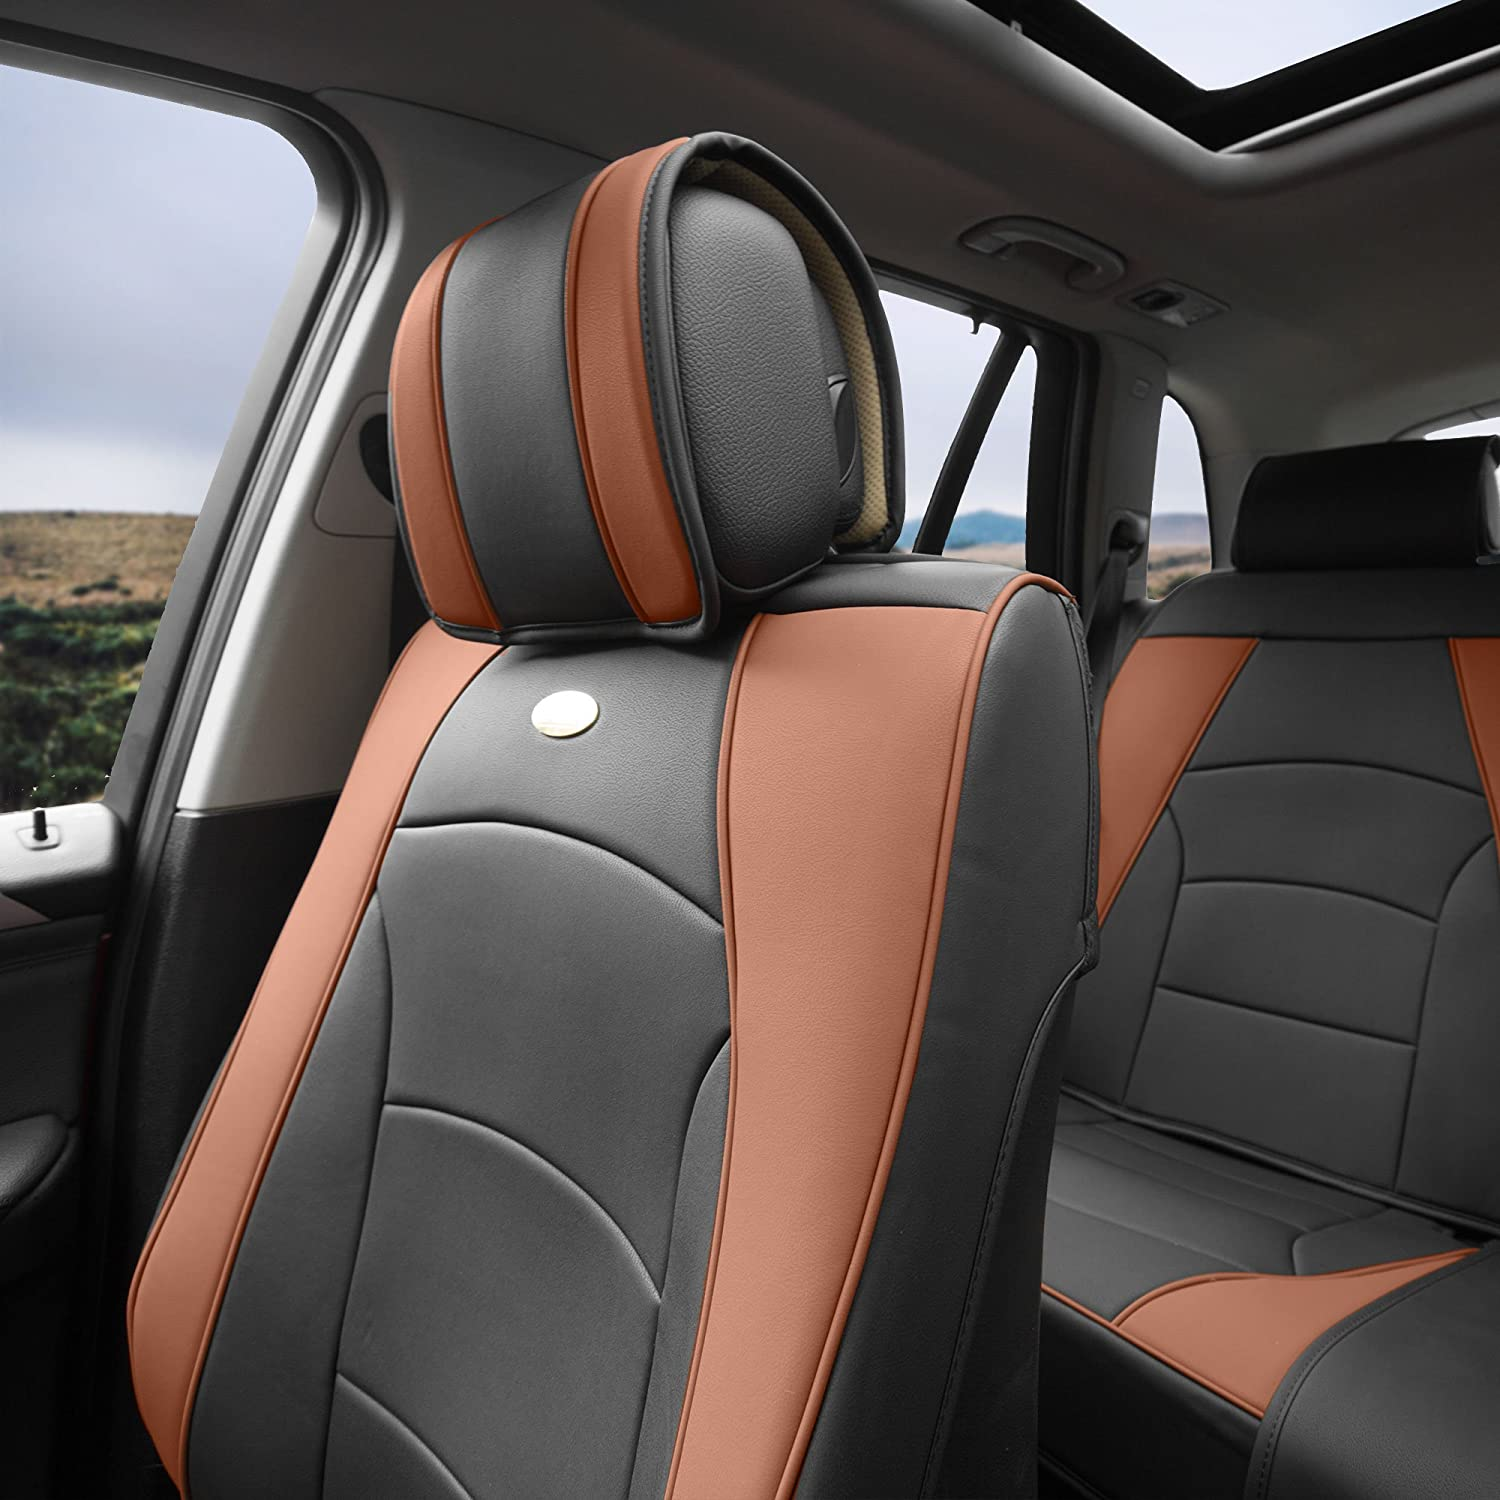 White Universal Fit for Cars Trucks /& SUVs FH Group PU205102 Ultra Comfort Highest Grade Faux Leather Seat Cushions Front Set